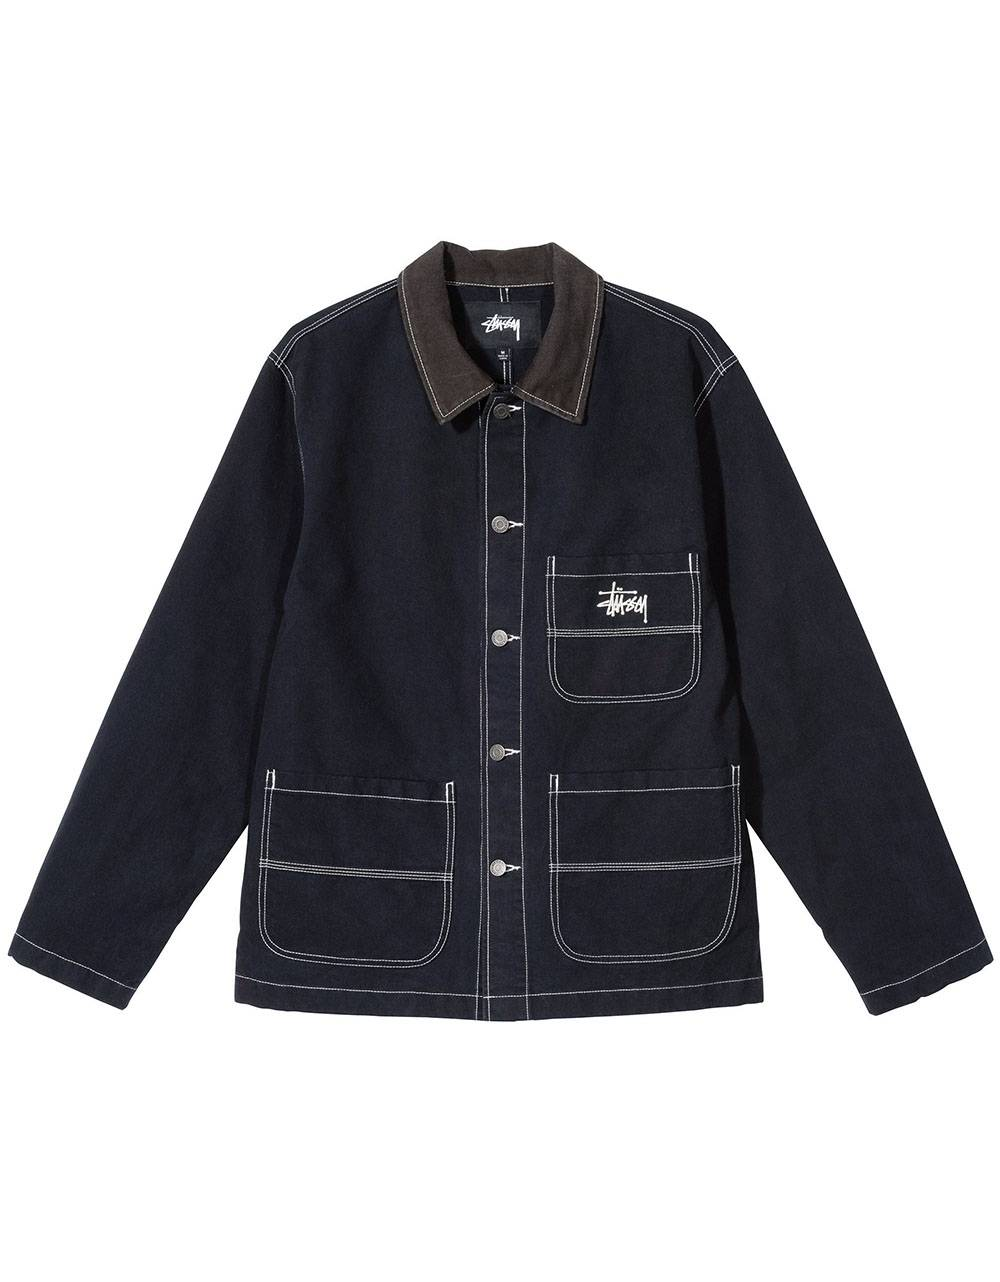 Stussy brushed moleskin chore workshirt jacket - navy Stussy Jacket 209,00 €